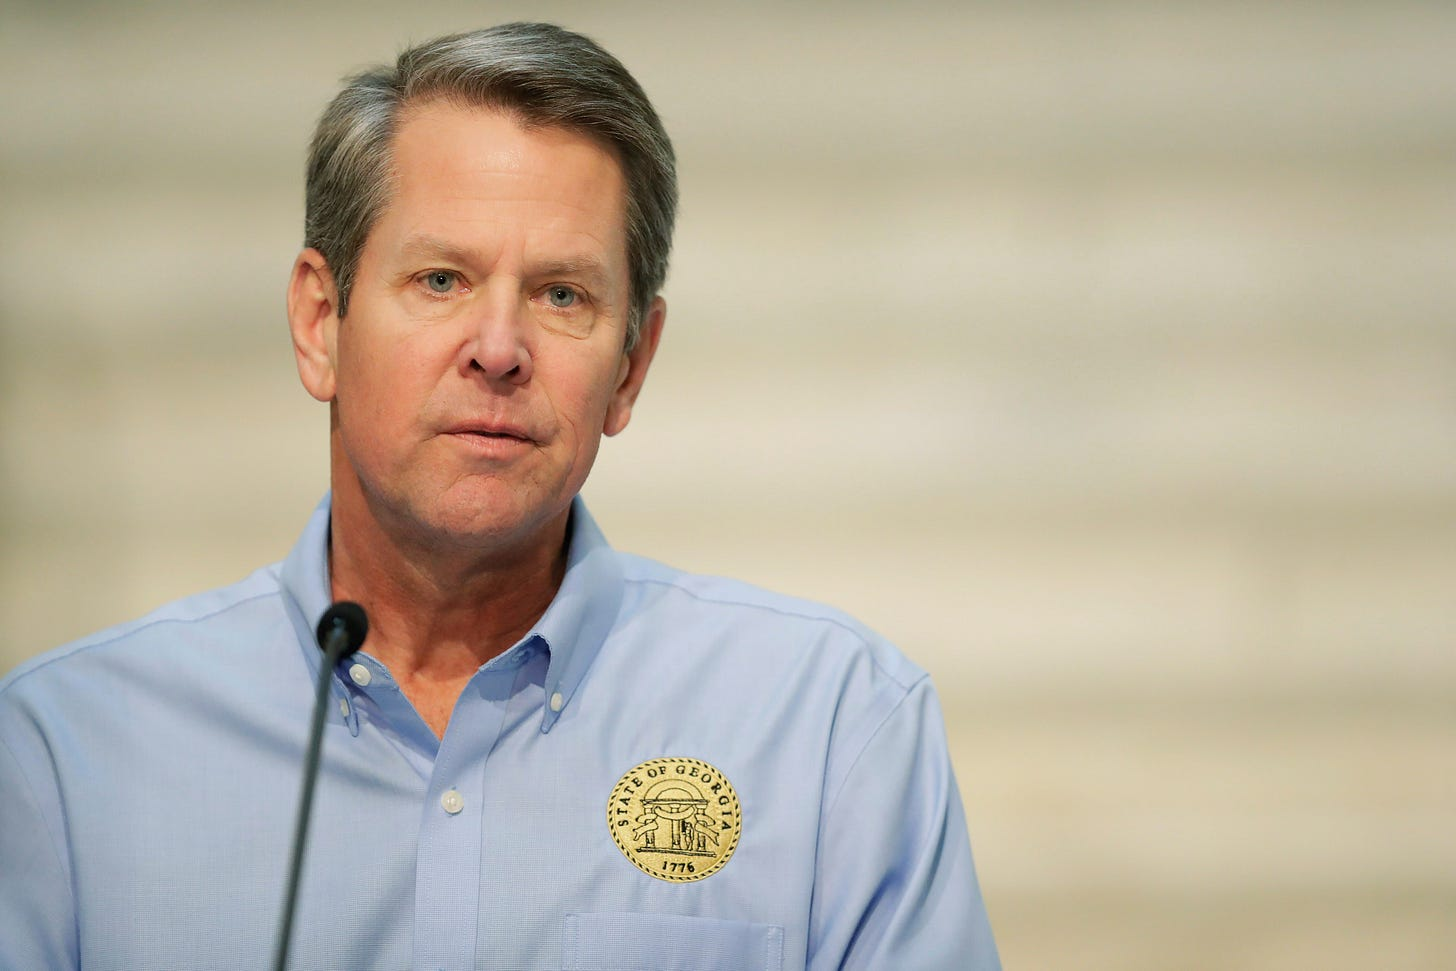 Where Does Brian Kemp Go For an Apology?